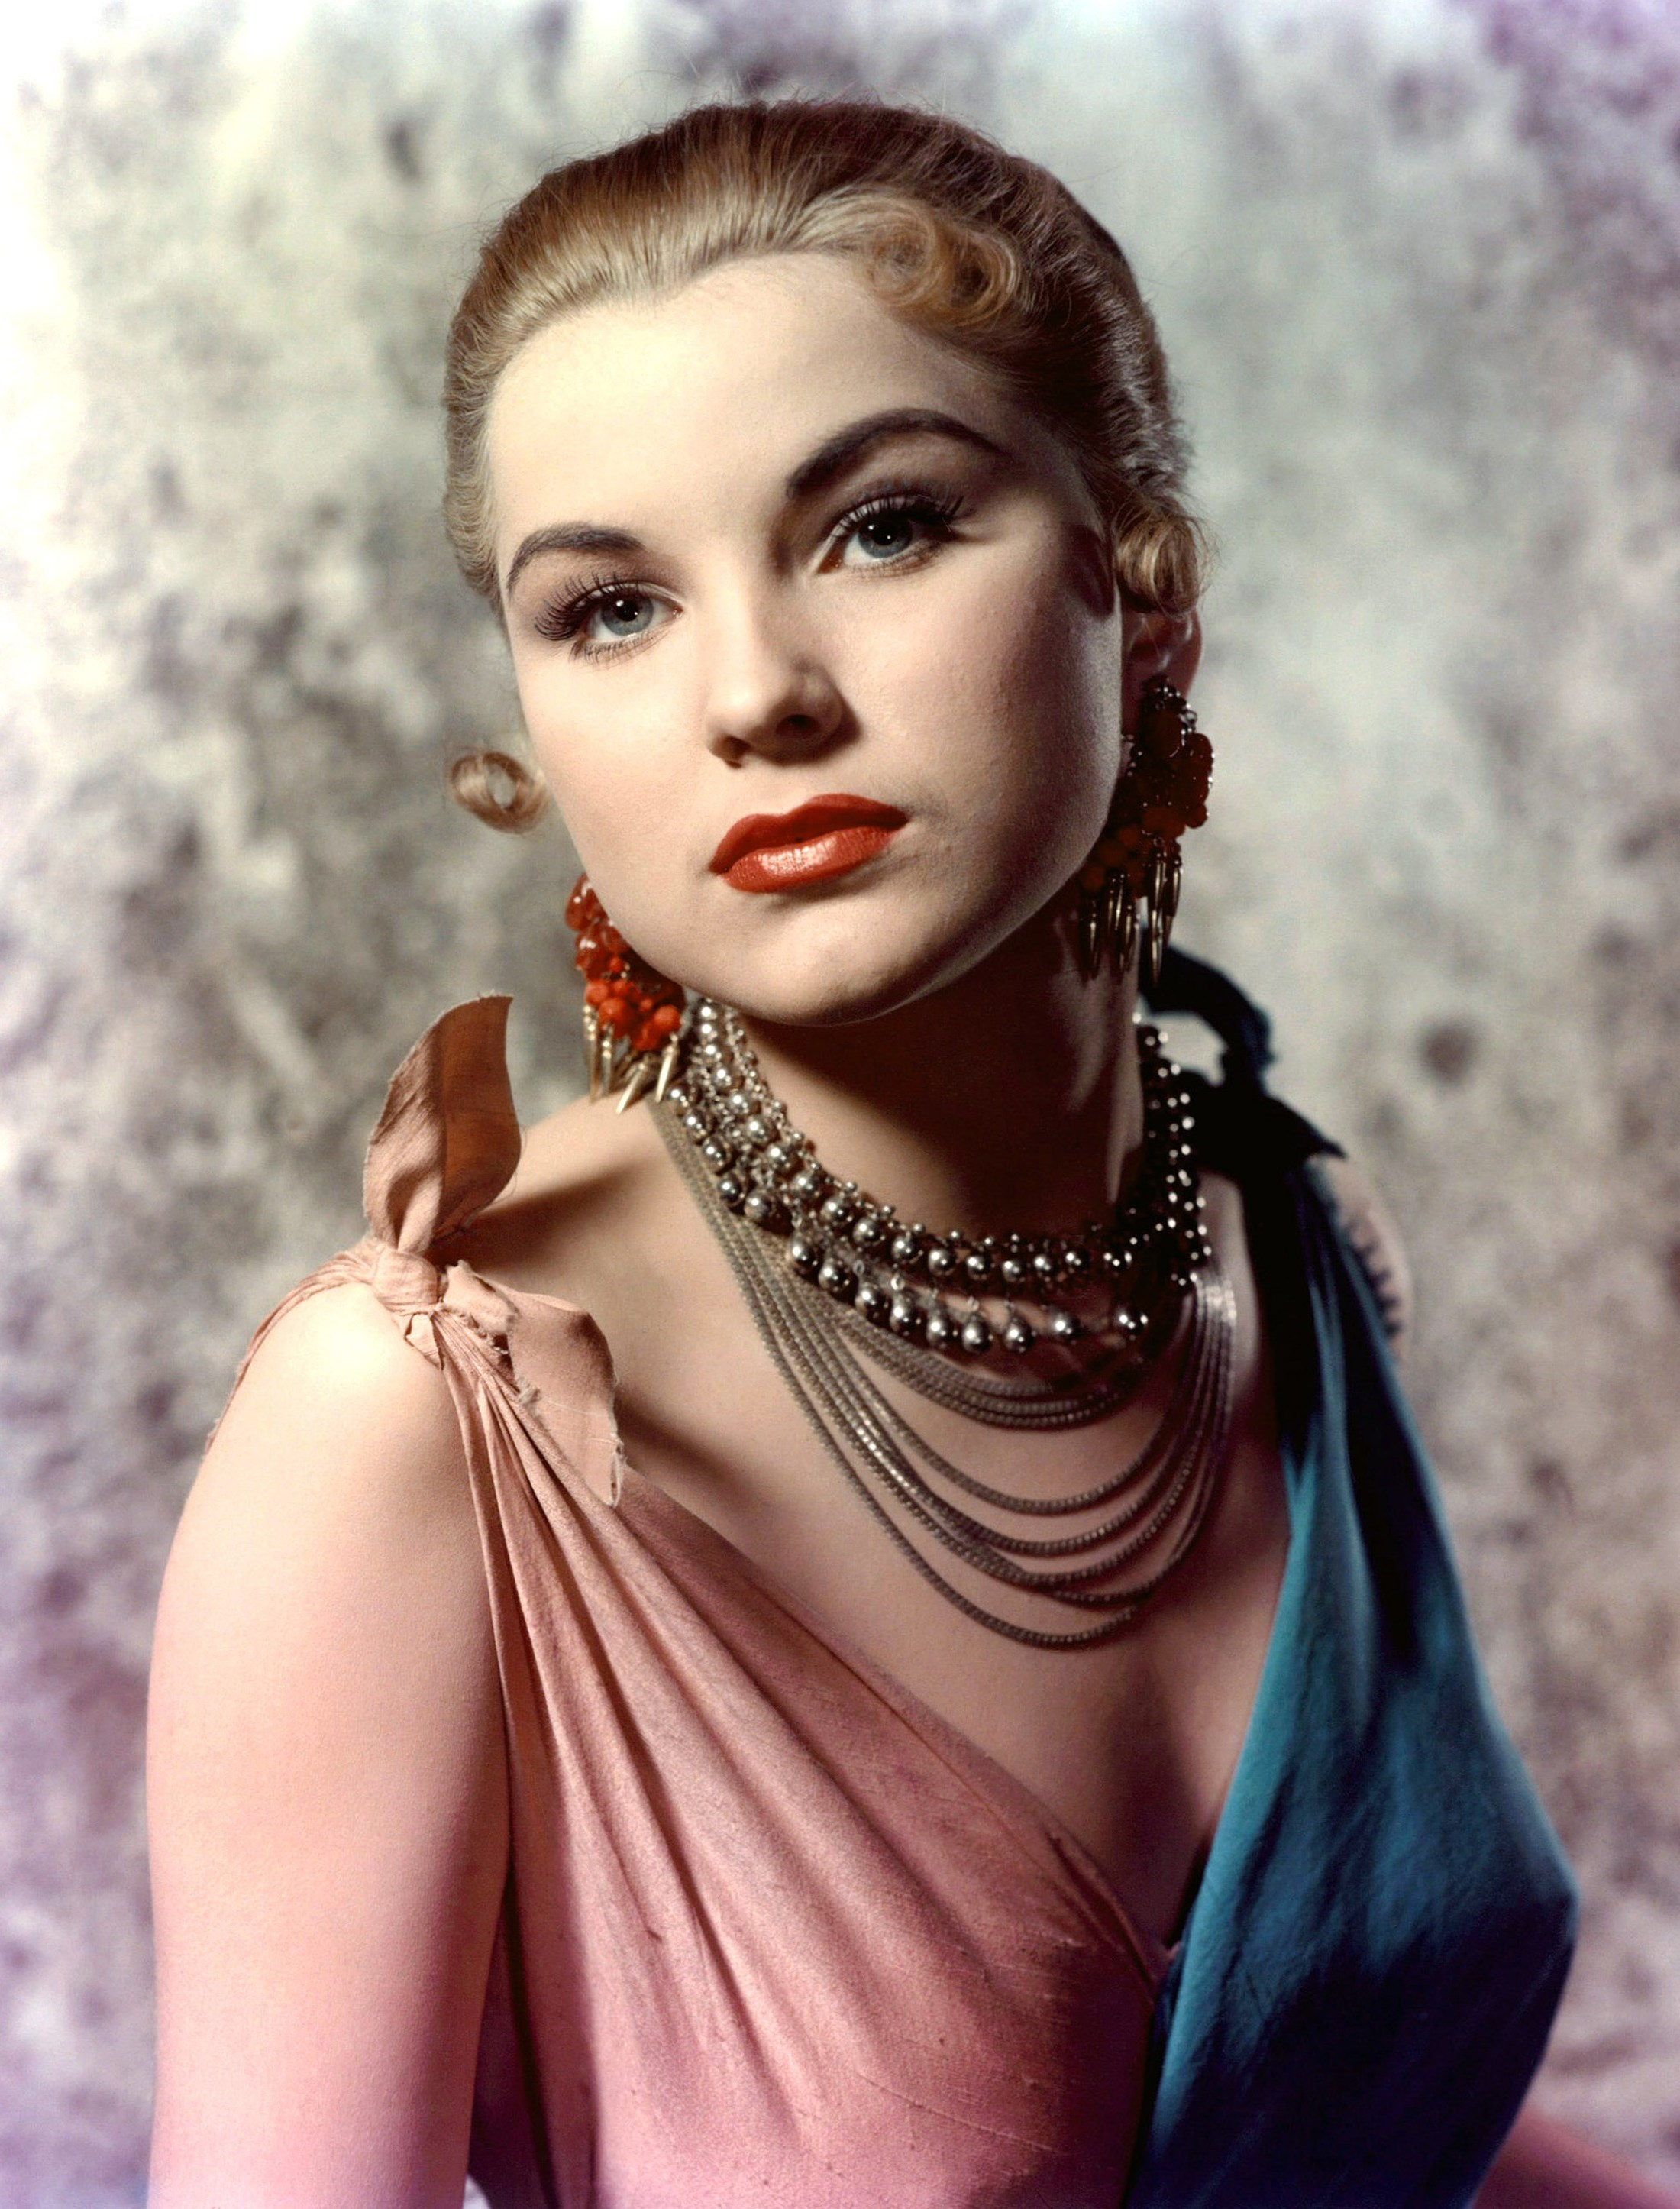 Debra Paget nude (98 photo), pics Fappening, Snapchat, braless 2017